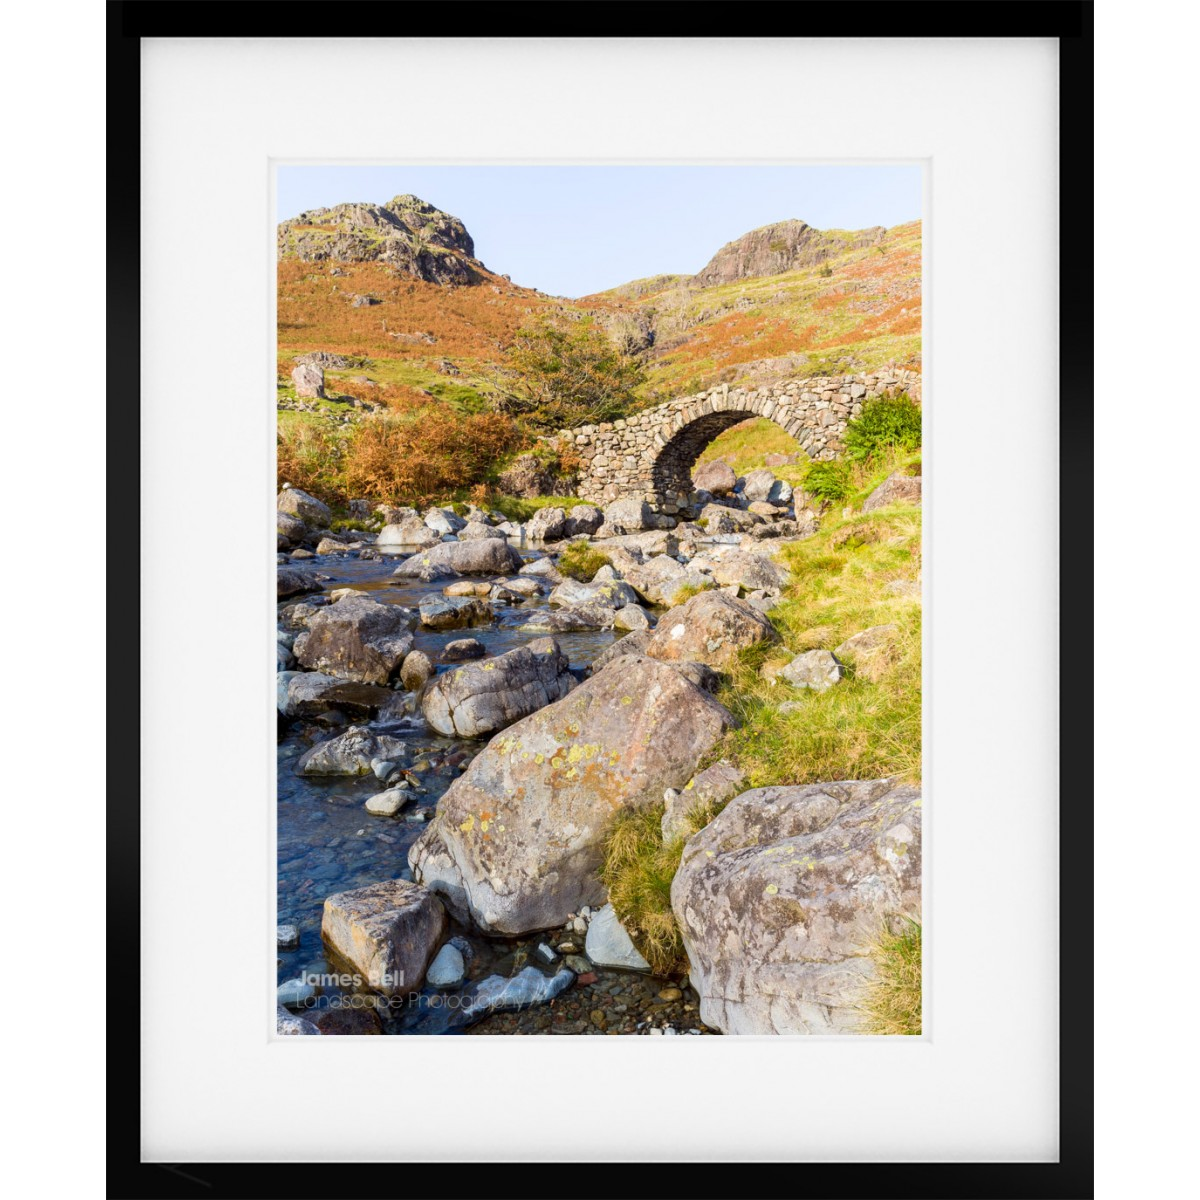 Framed print of Lingcove Bridge at the head of the Eskdale Valley in the Lake District